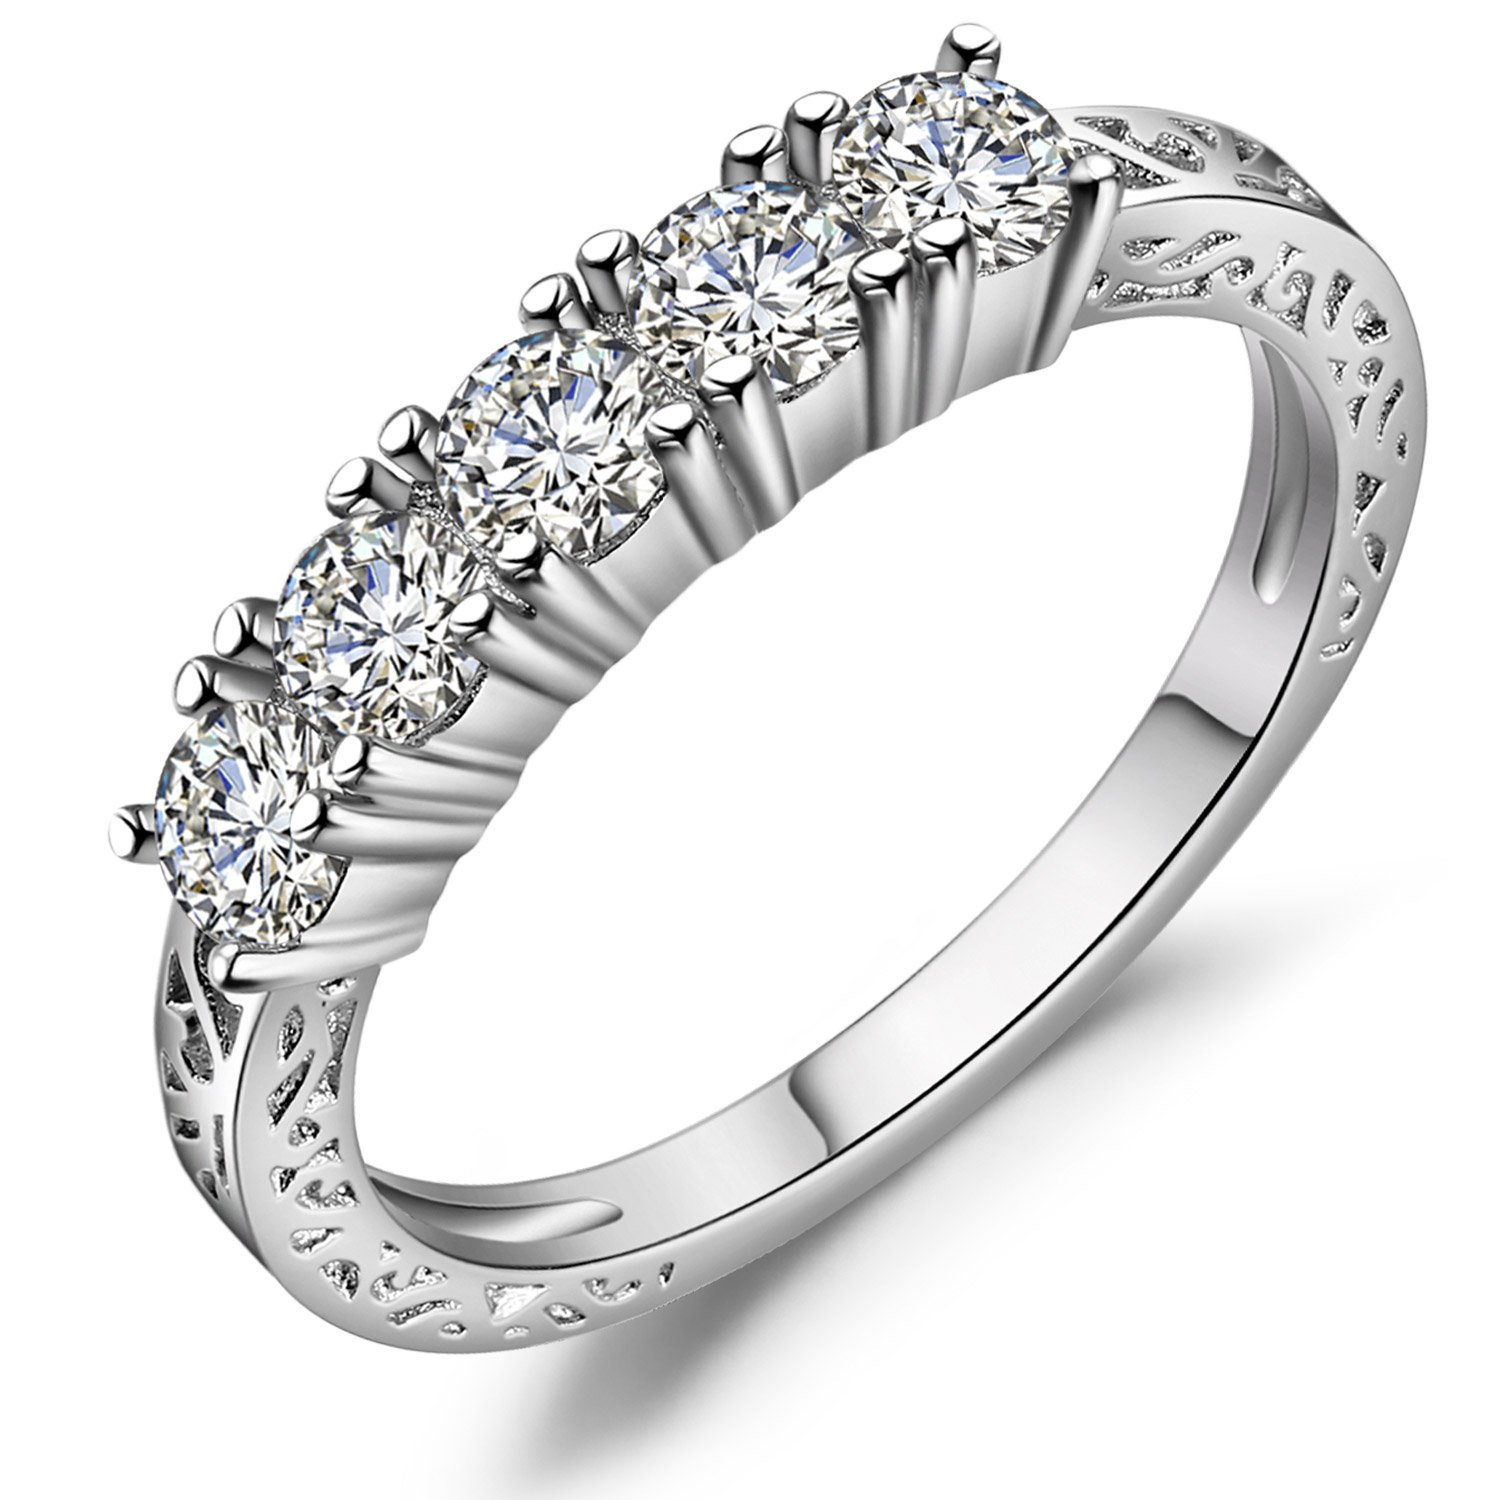 Vibrille Sterling Silver and Cubic Zirconia Five Stone Anniversary Wedding Band Ring for Women Size 7